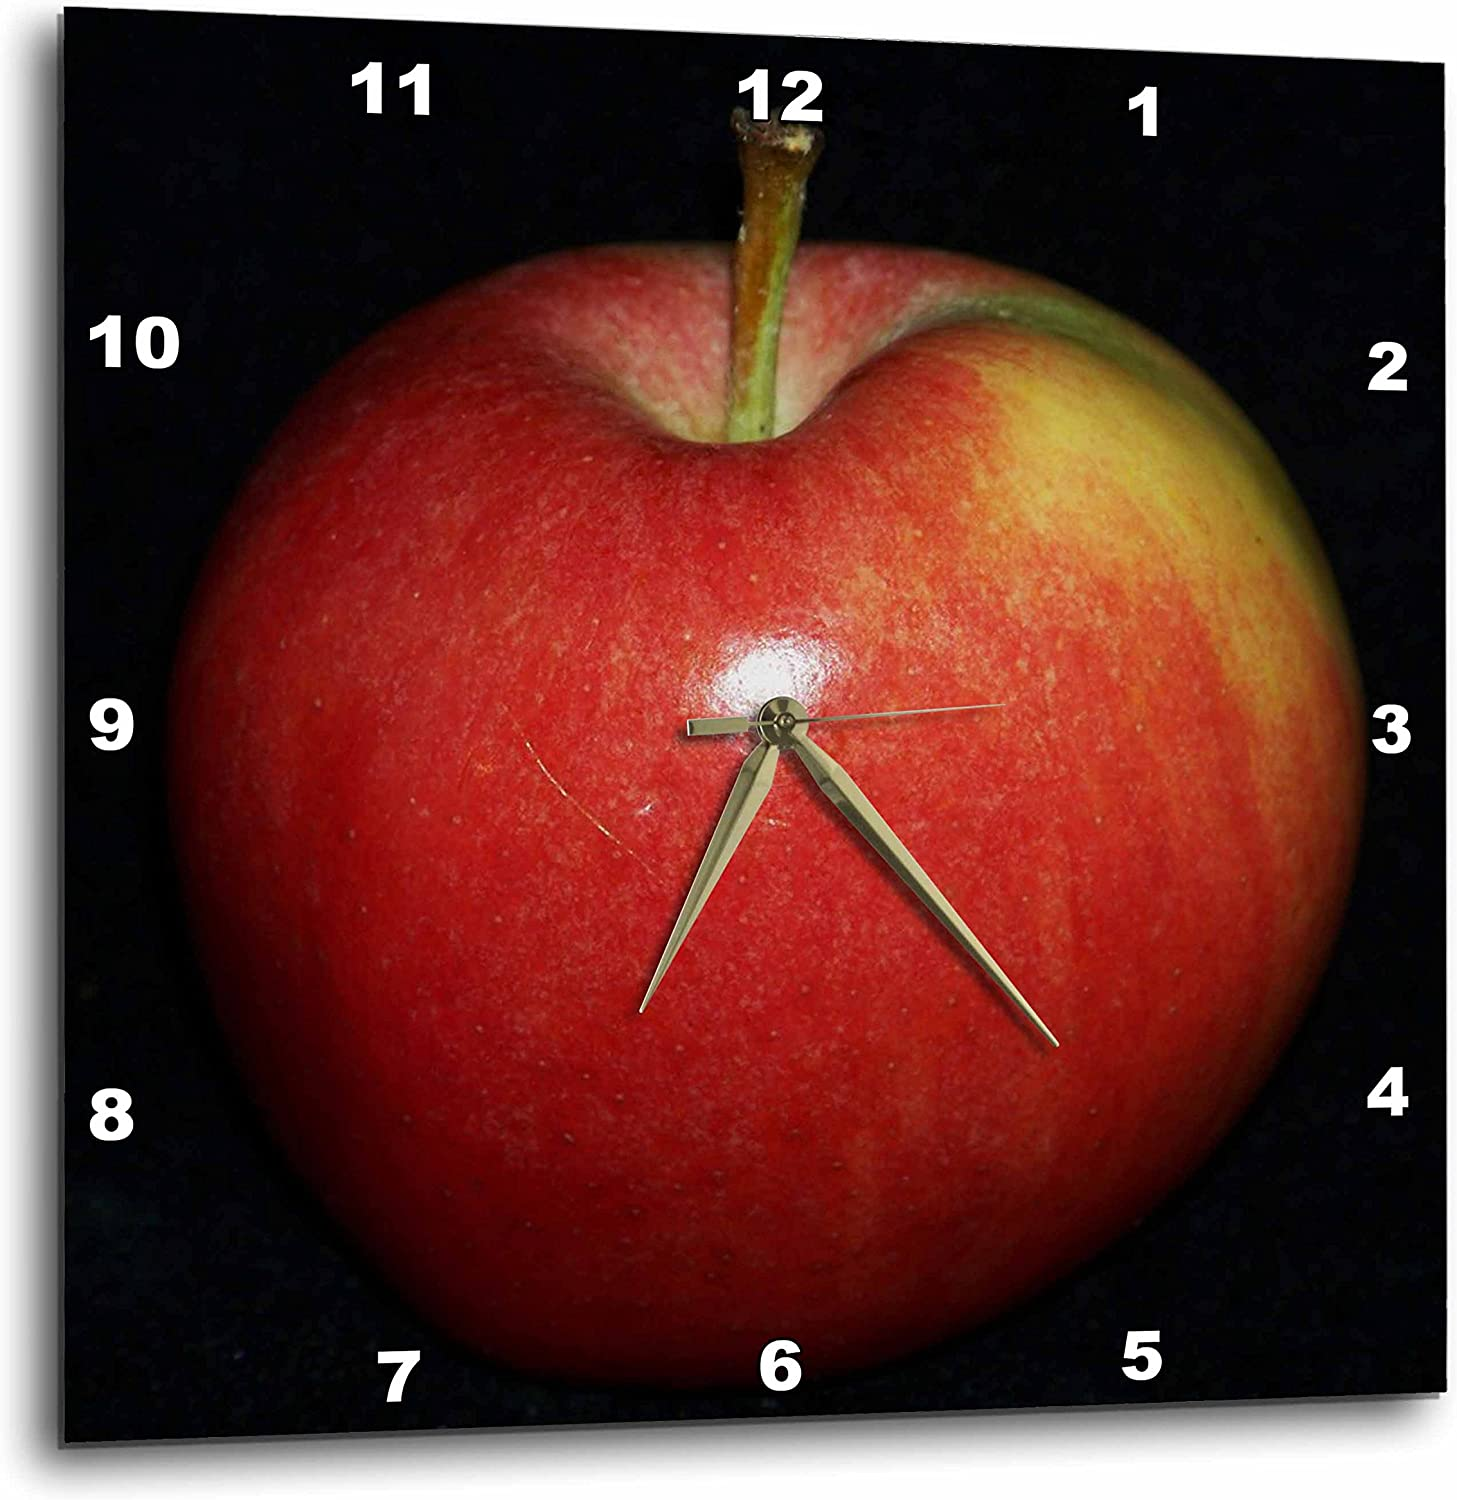 3dRose DPP_21643_2 Red & Yellow Apple Black Background Wall Clock, 13 by 13